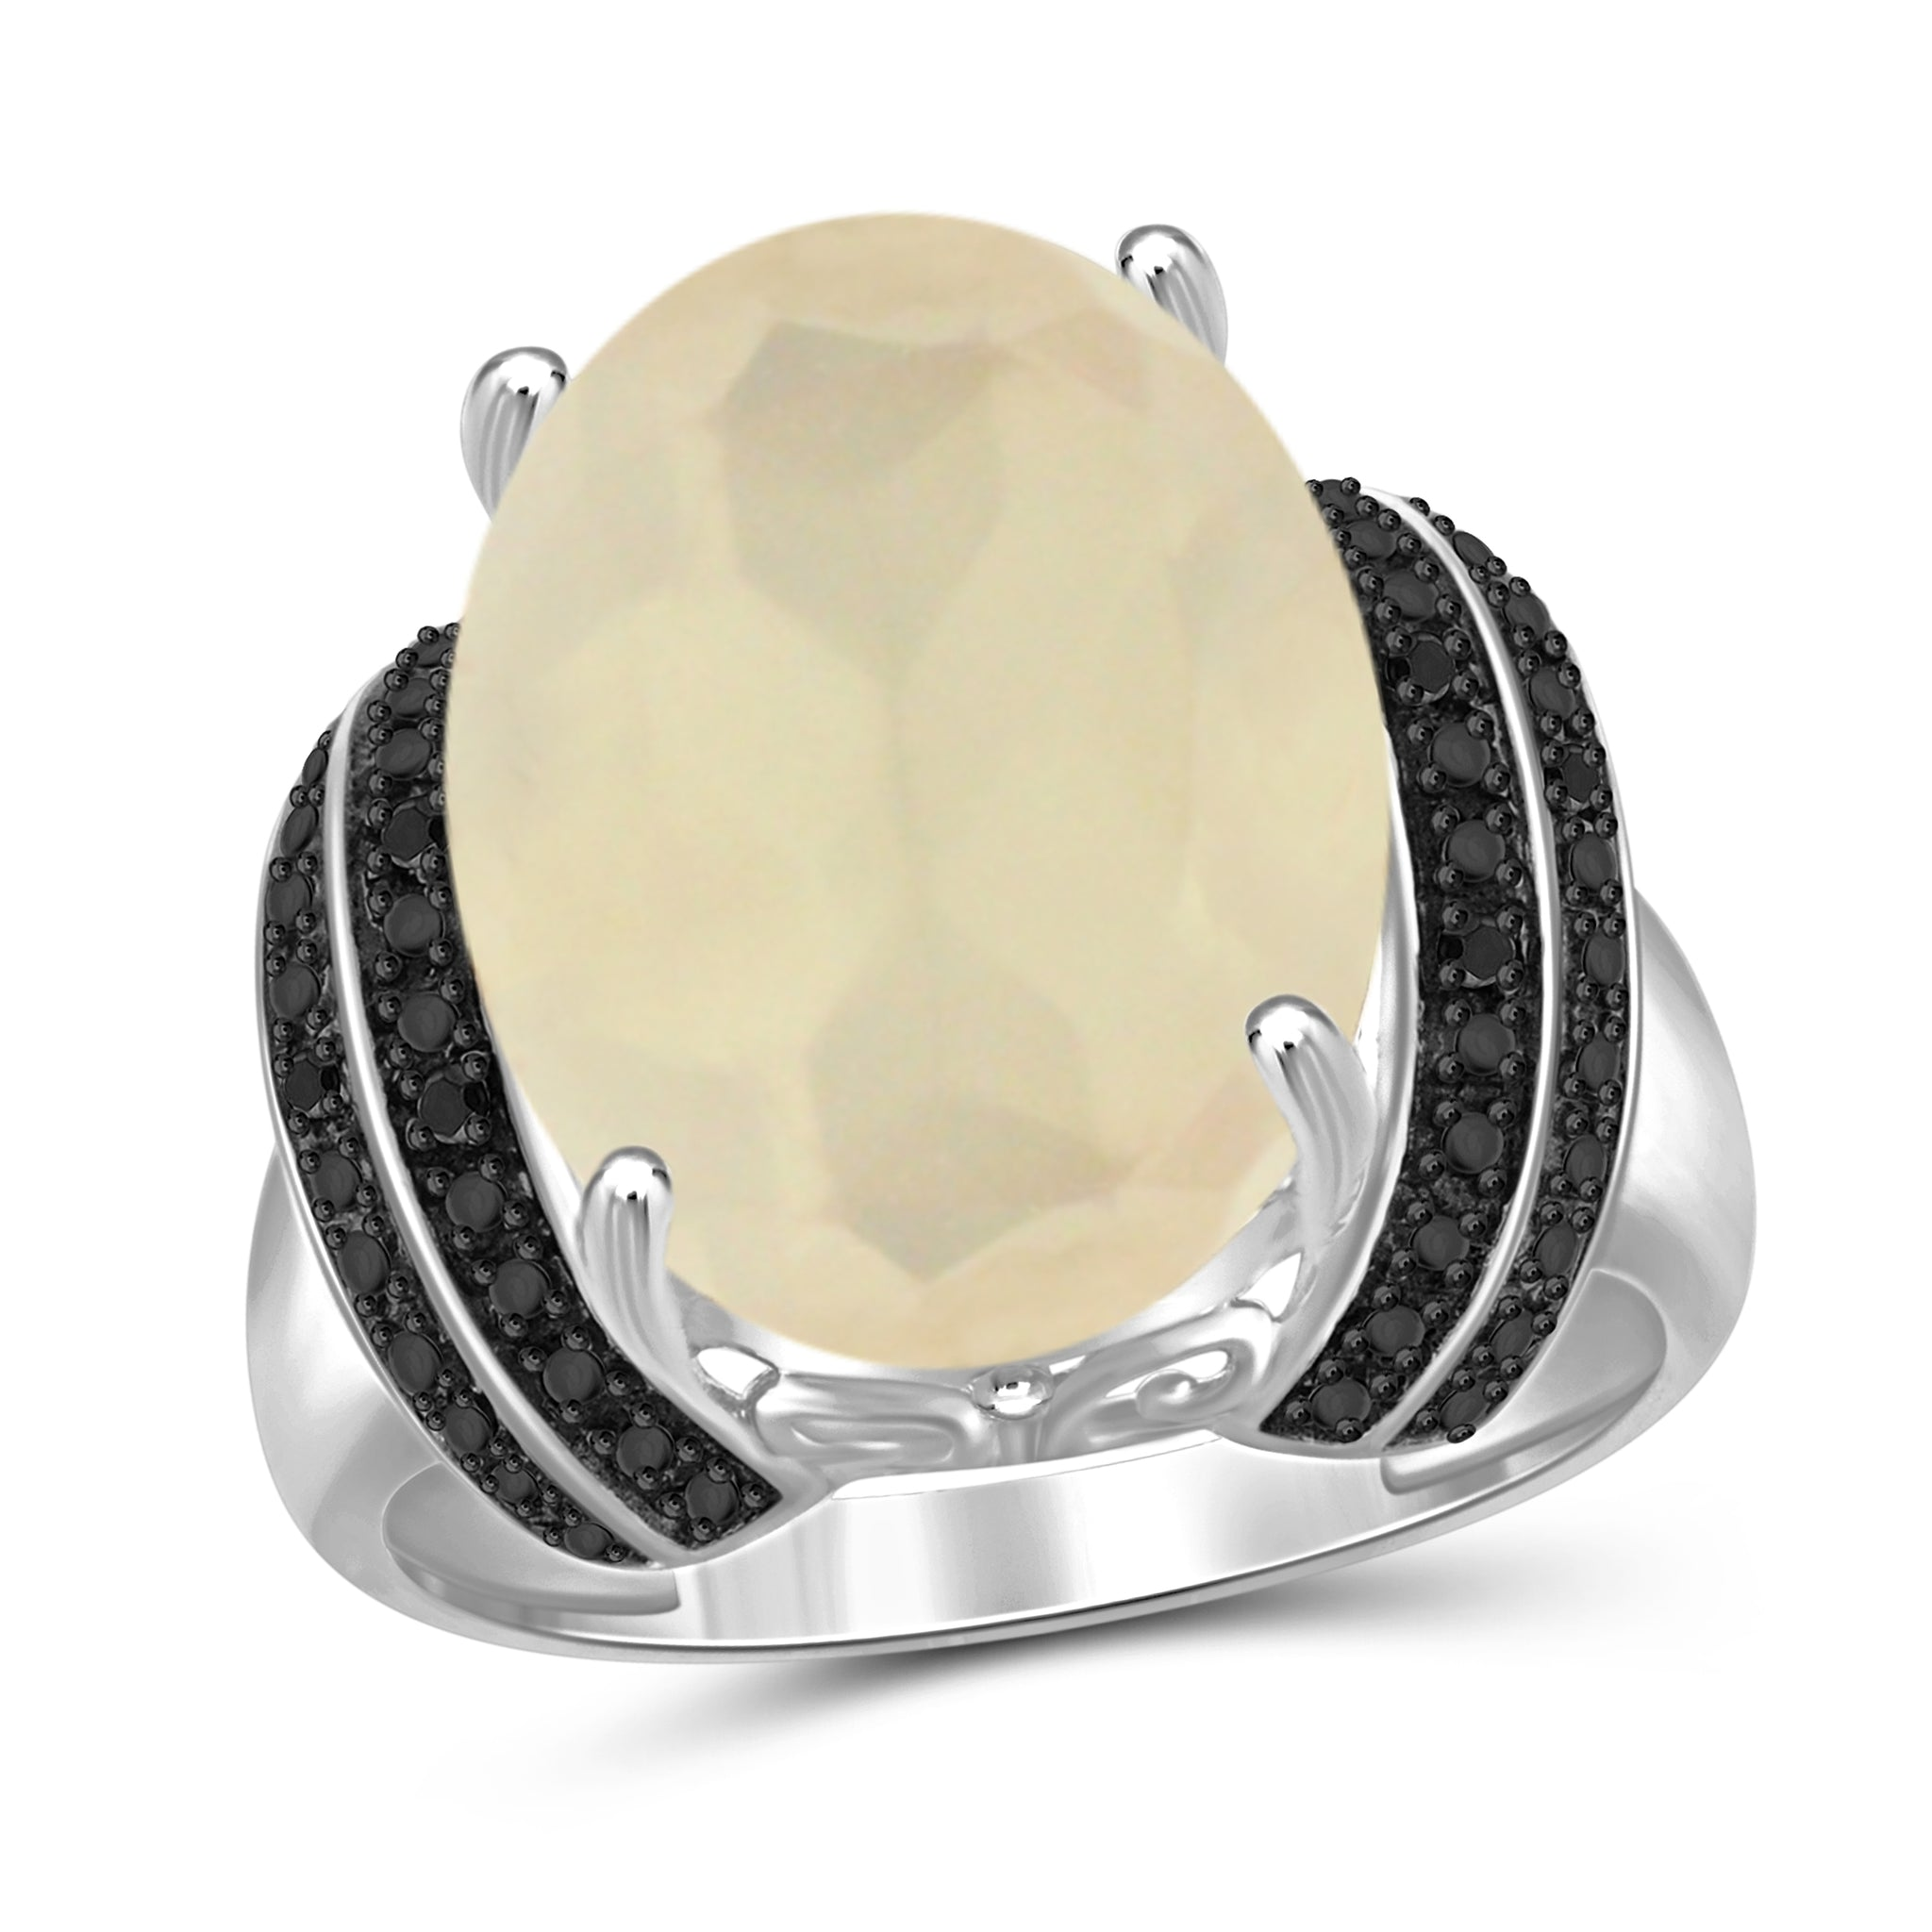 JewelersClub 8 1/4 Carat T.G.W. Moon and Black Diamond Accent Sterling Silver Ring